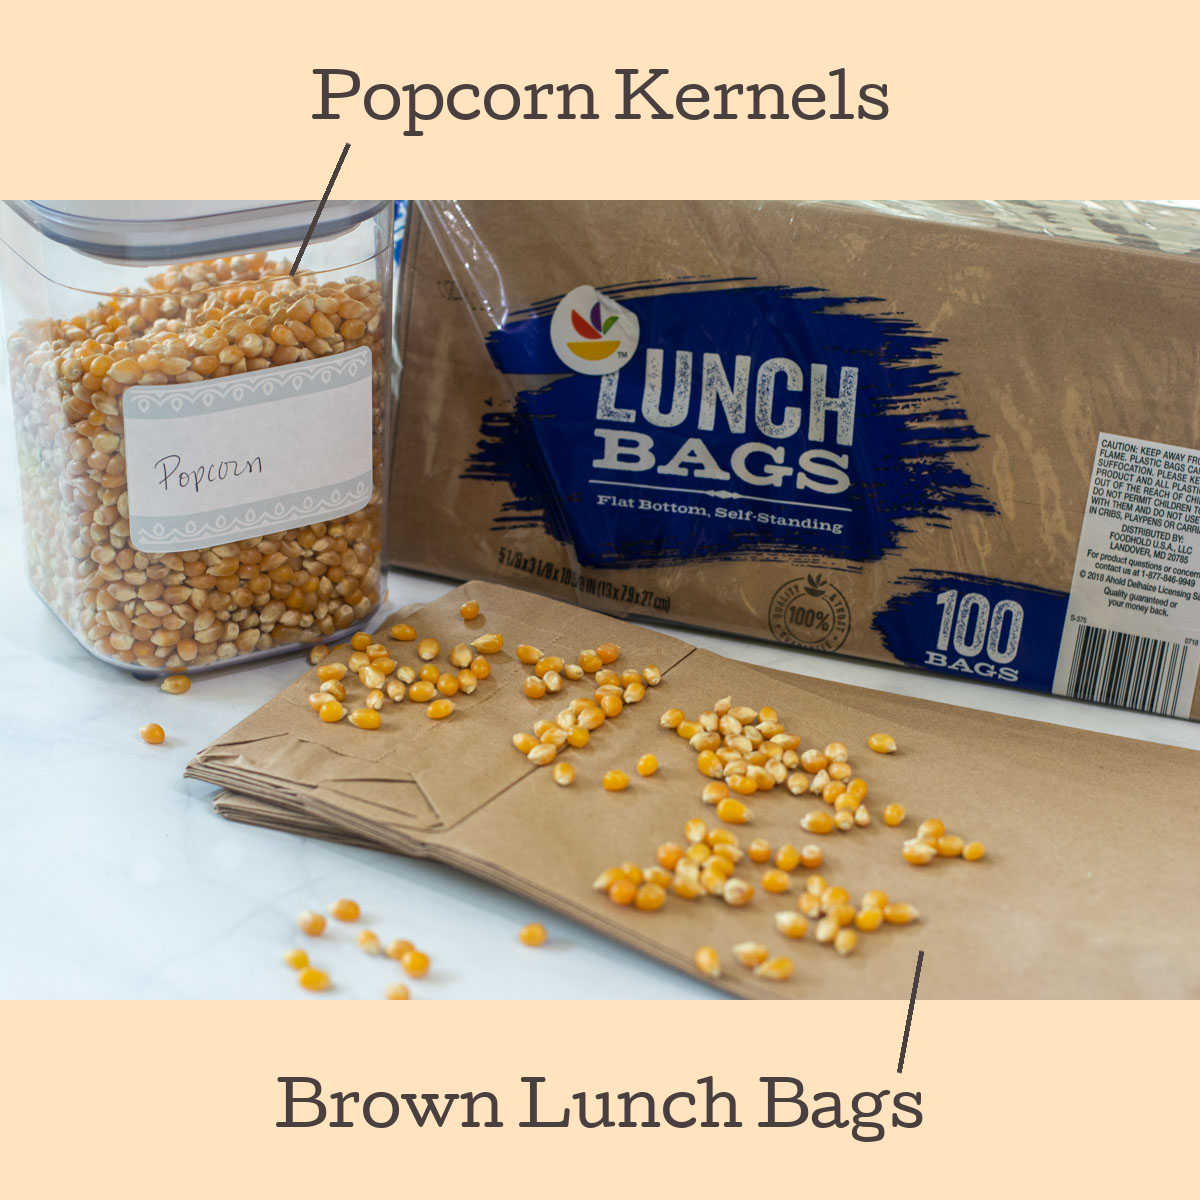 brown lunch bags and popcorn kernels on the table.